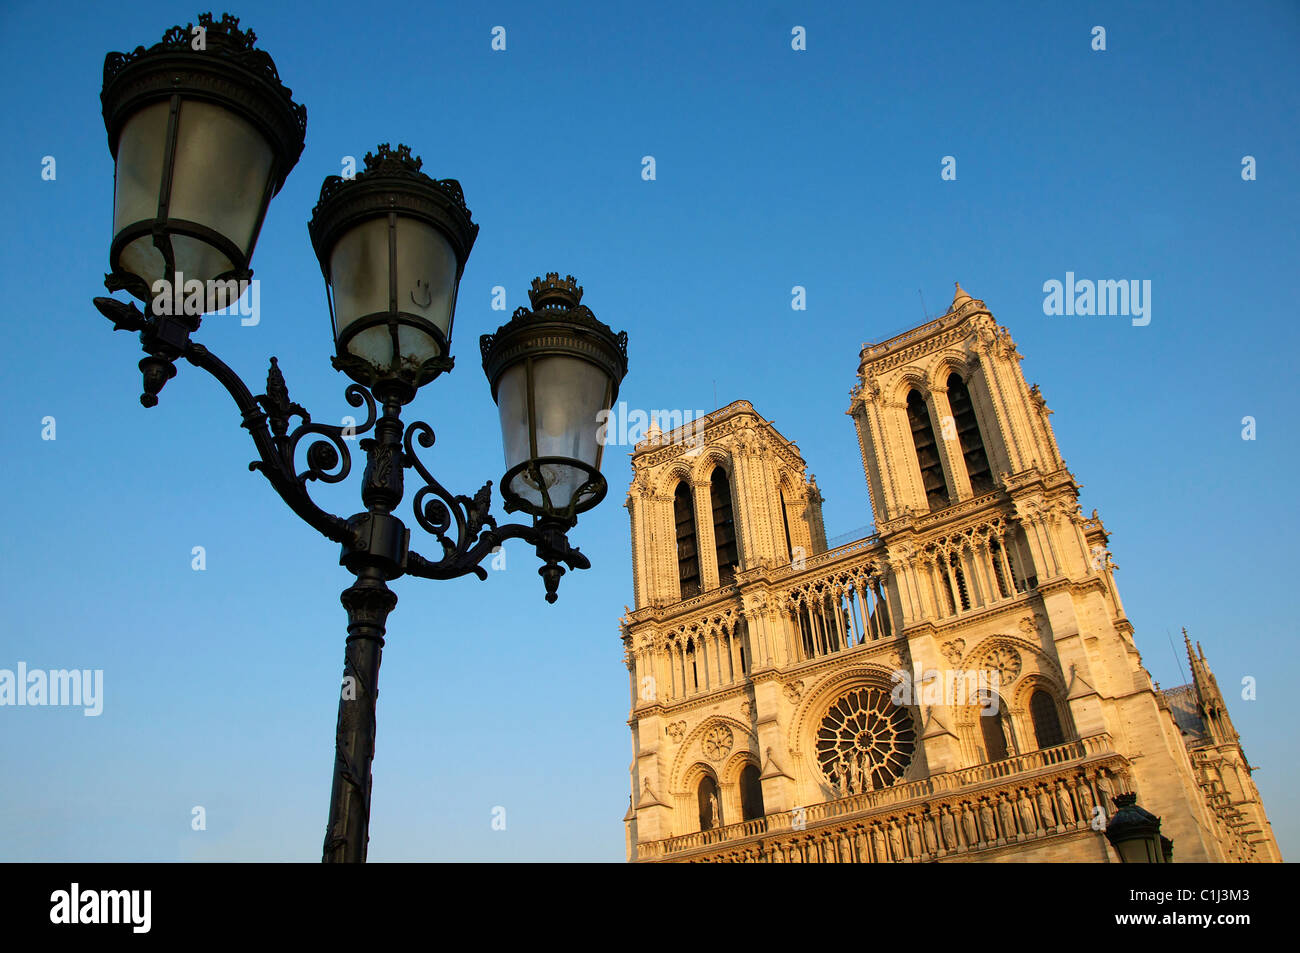 An art deco streetlamp outside the Notre Dame cathedral in Paris. - Stock Image